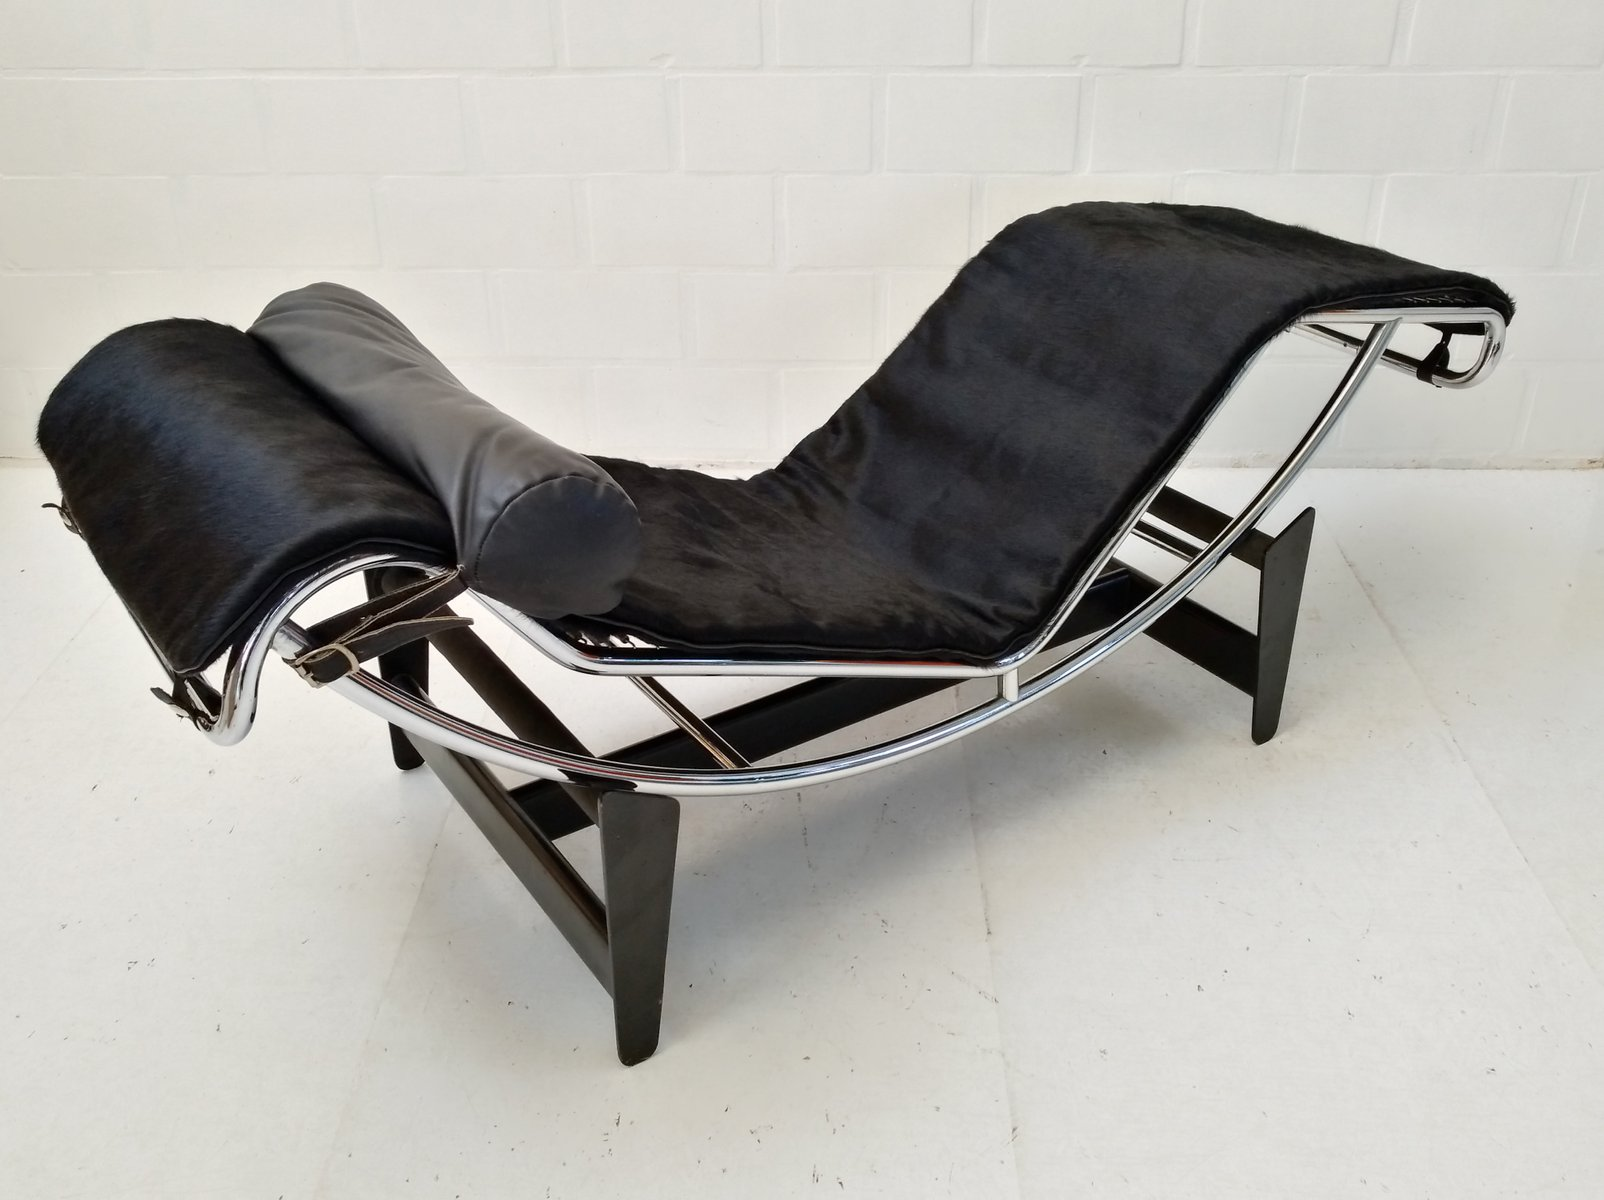 Early lc4 chaise longue by le corbusier perriand for Chaise longue le corbusier prezzo